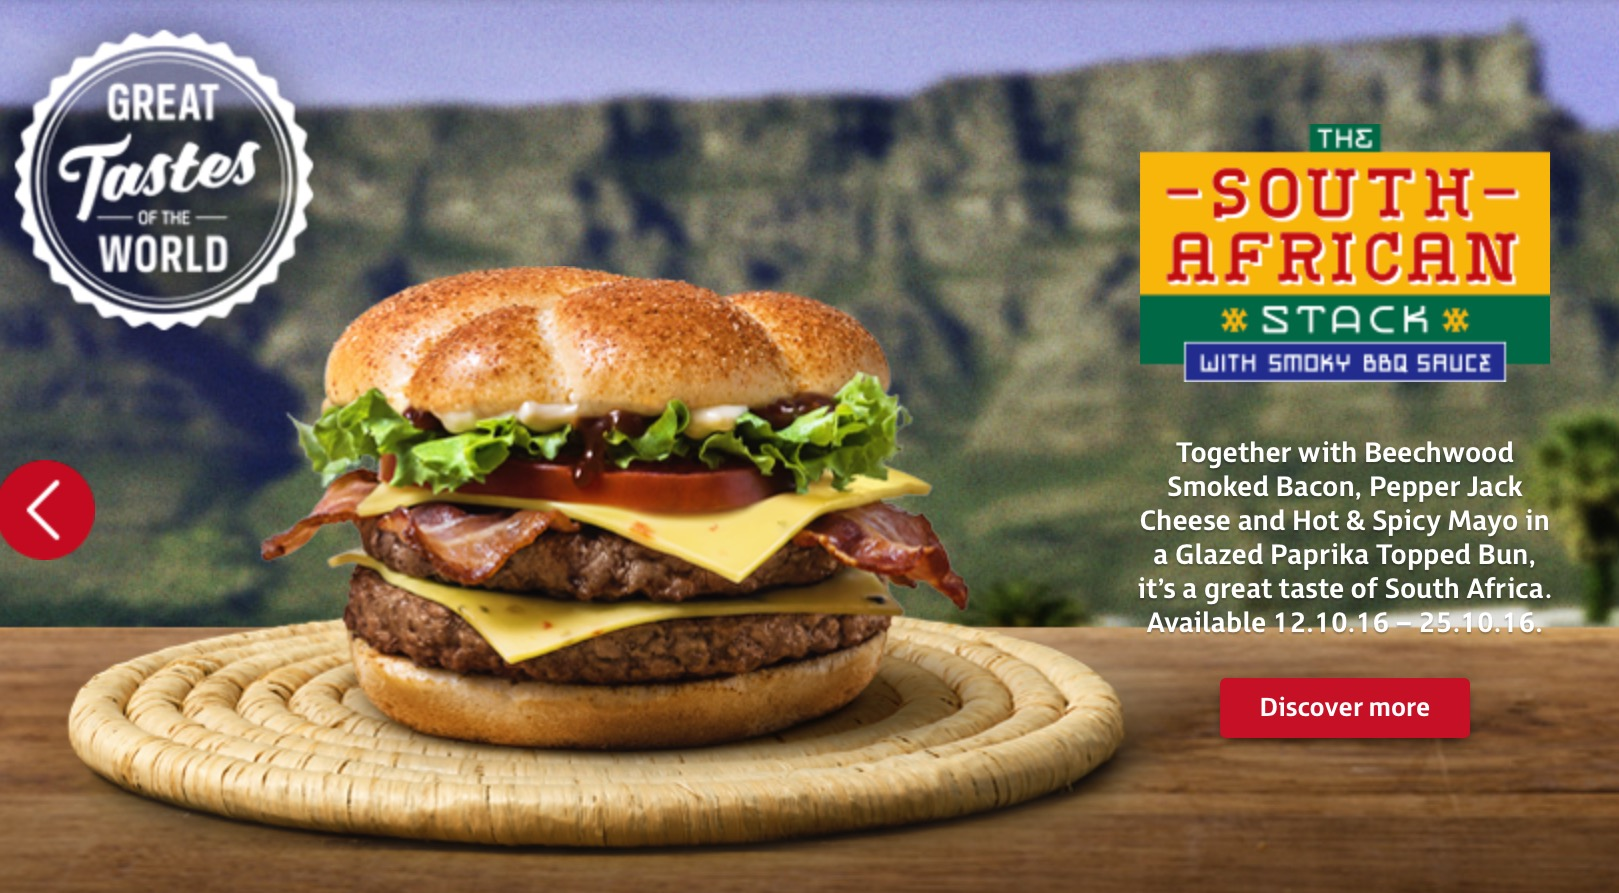 mcdonalds promotional strategies in south africa